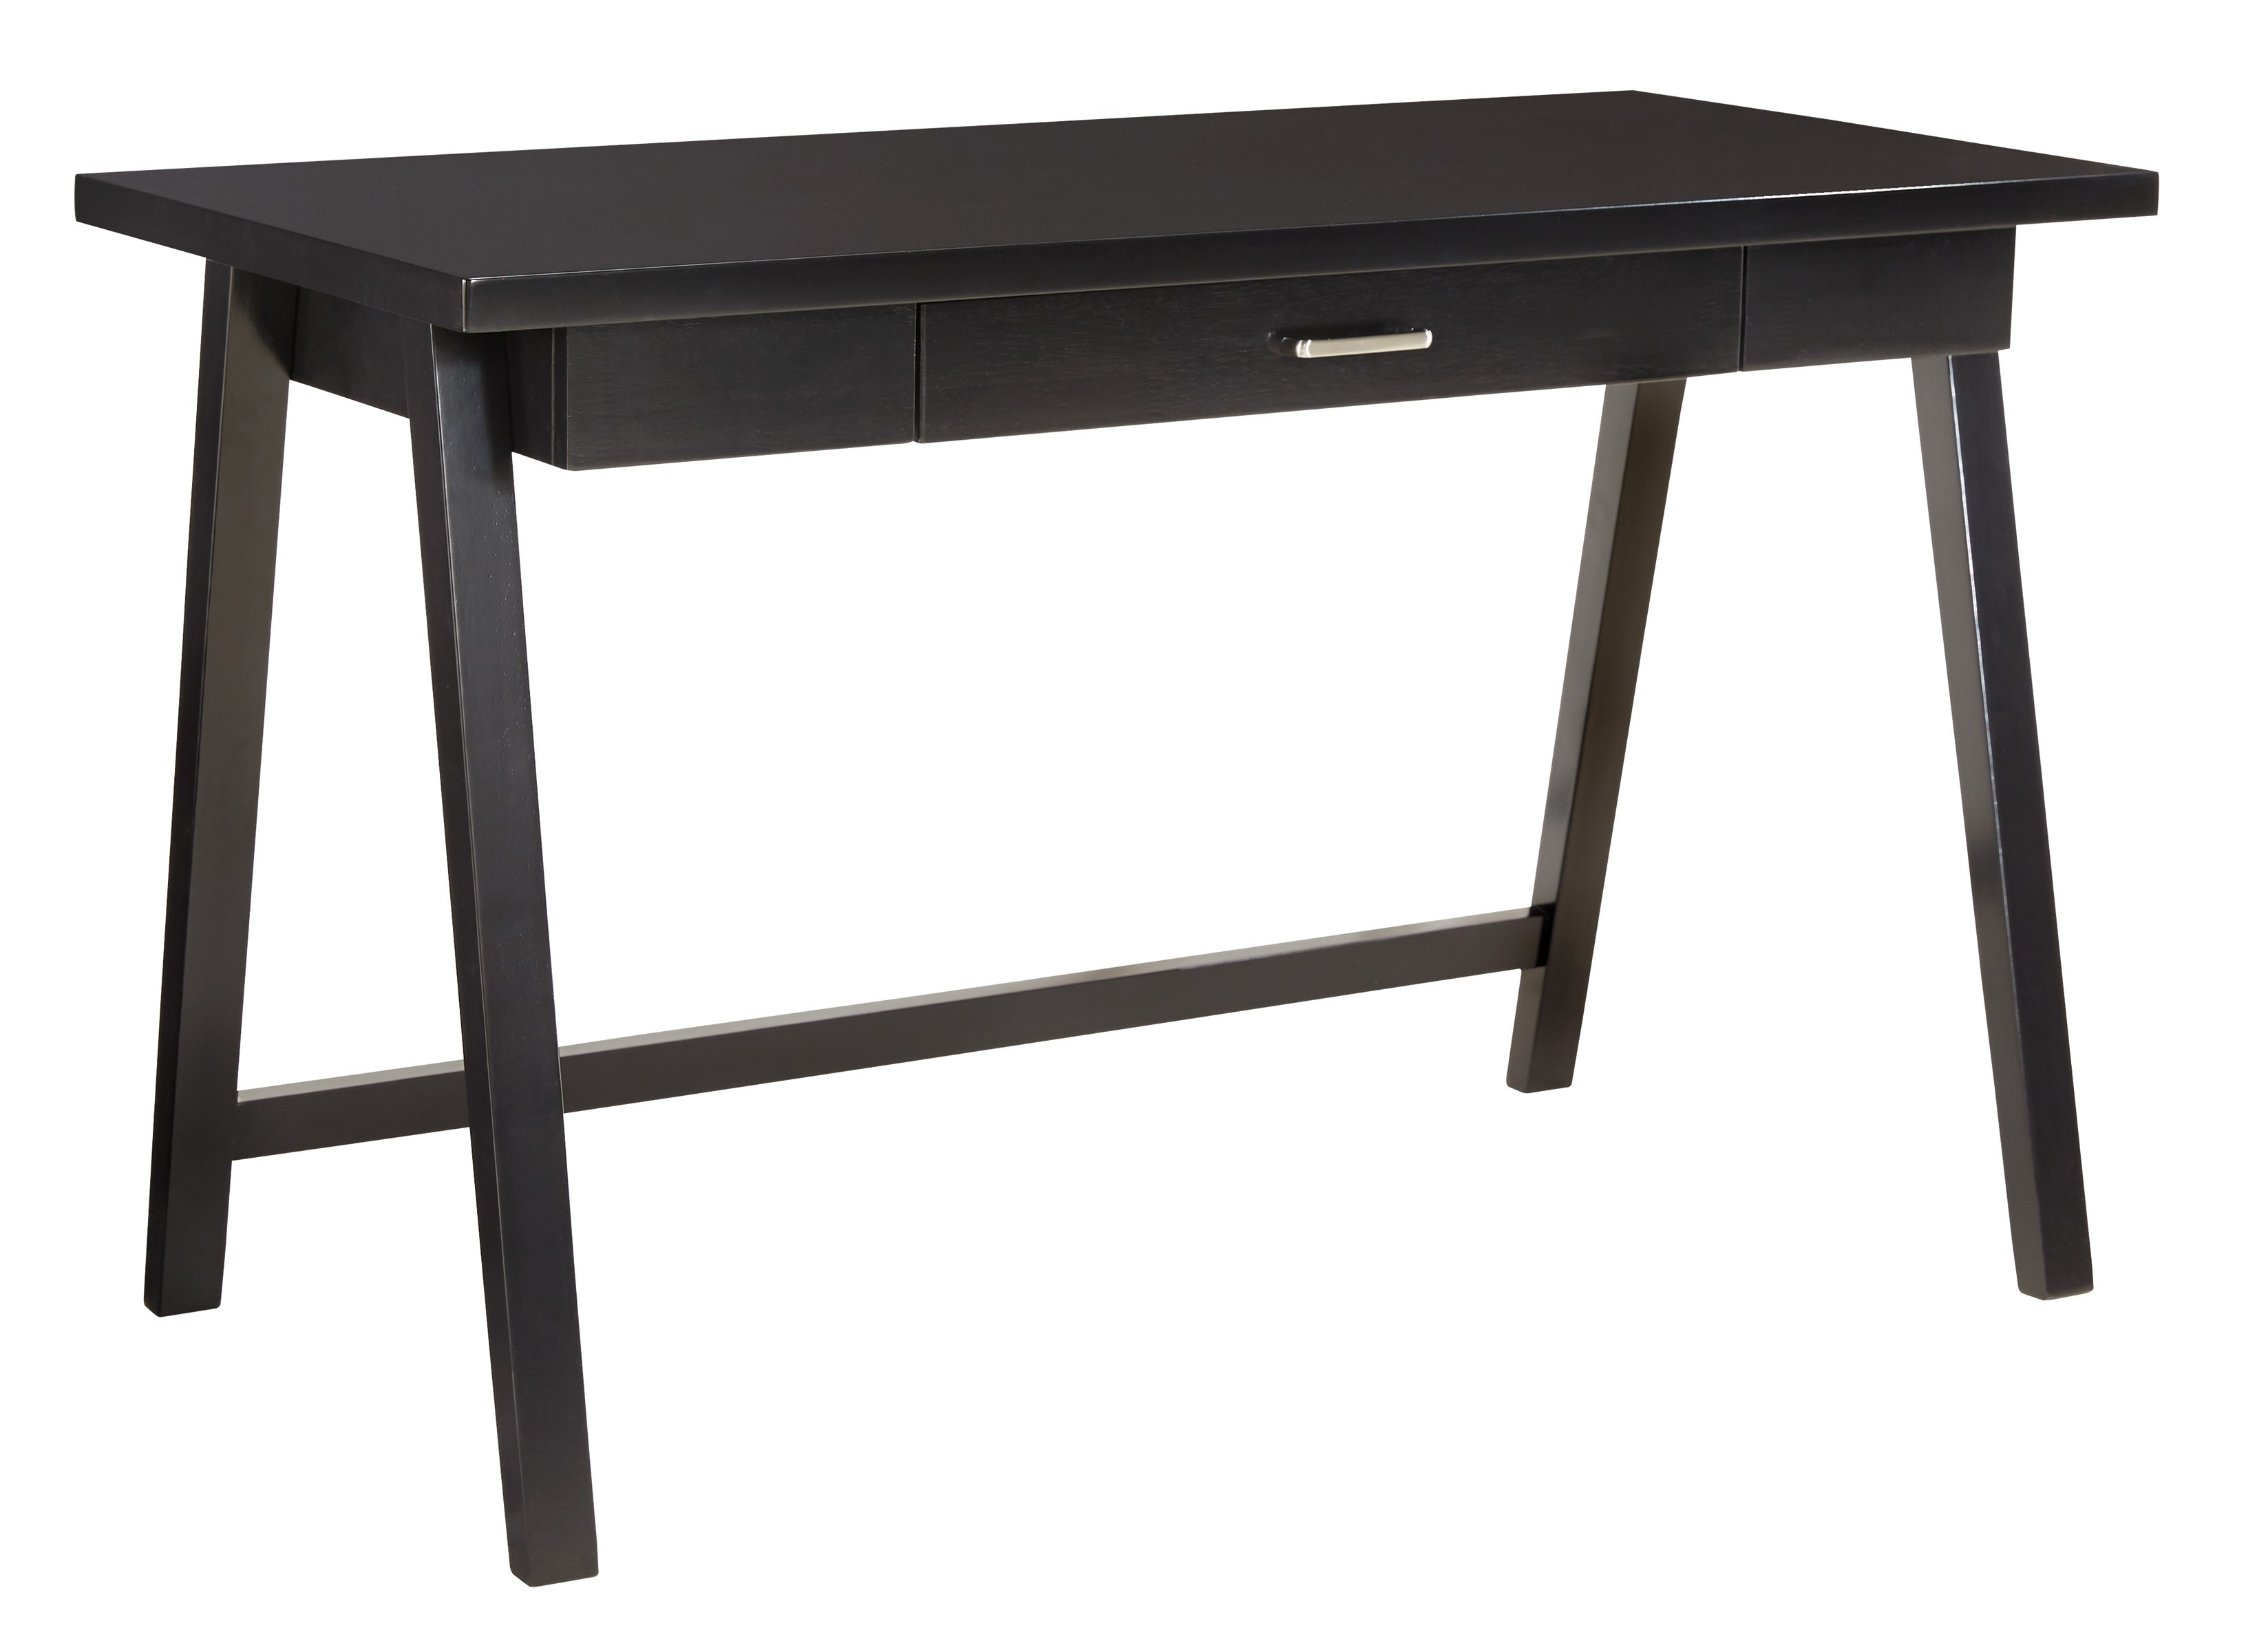 Ashley Braflin Home Office Small Desk in Black - Walmart.com